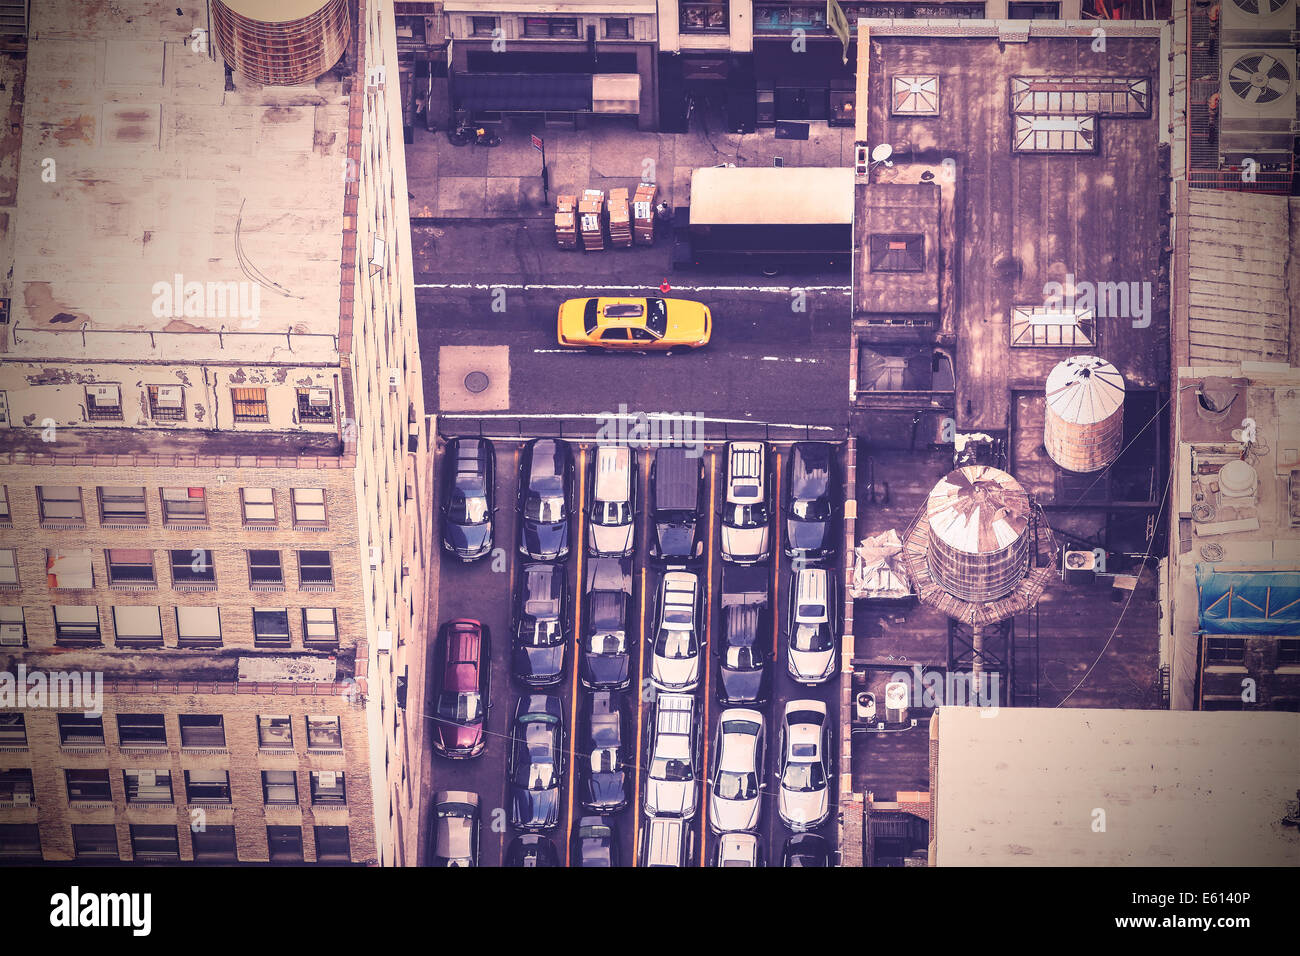 Vintage aerial picture of street in New York City, USA - Stock Image